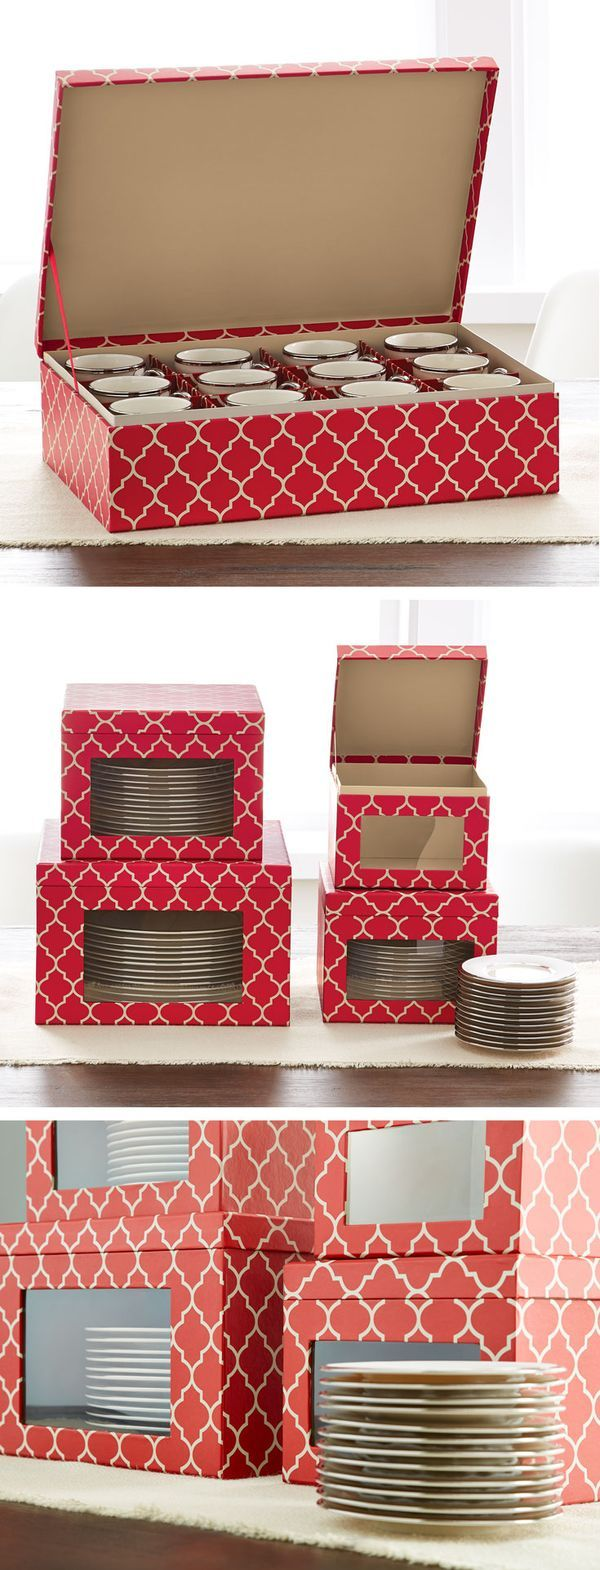 Our Holiday Dinnerware Storage Cases Protect Your China From Year To Year.  And Youu0027ll Love The Viewing Window That Lets You See Whatu0027s Stored Inside!